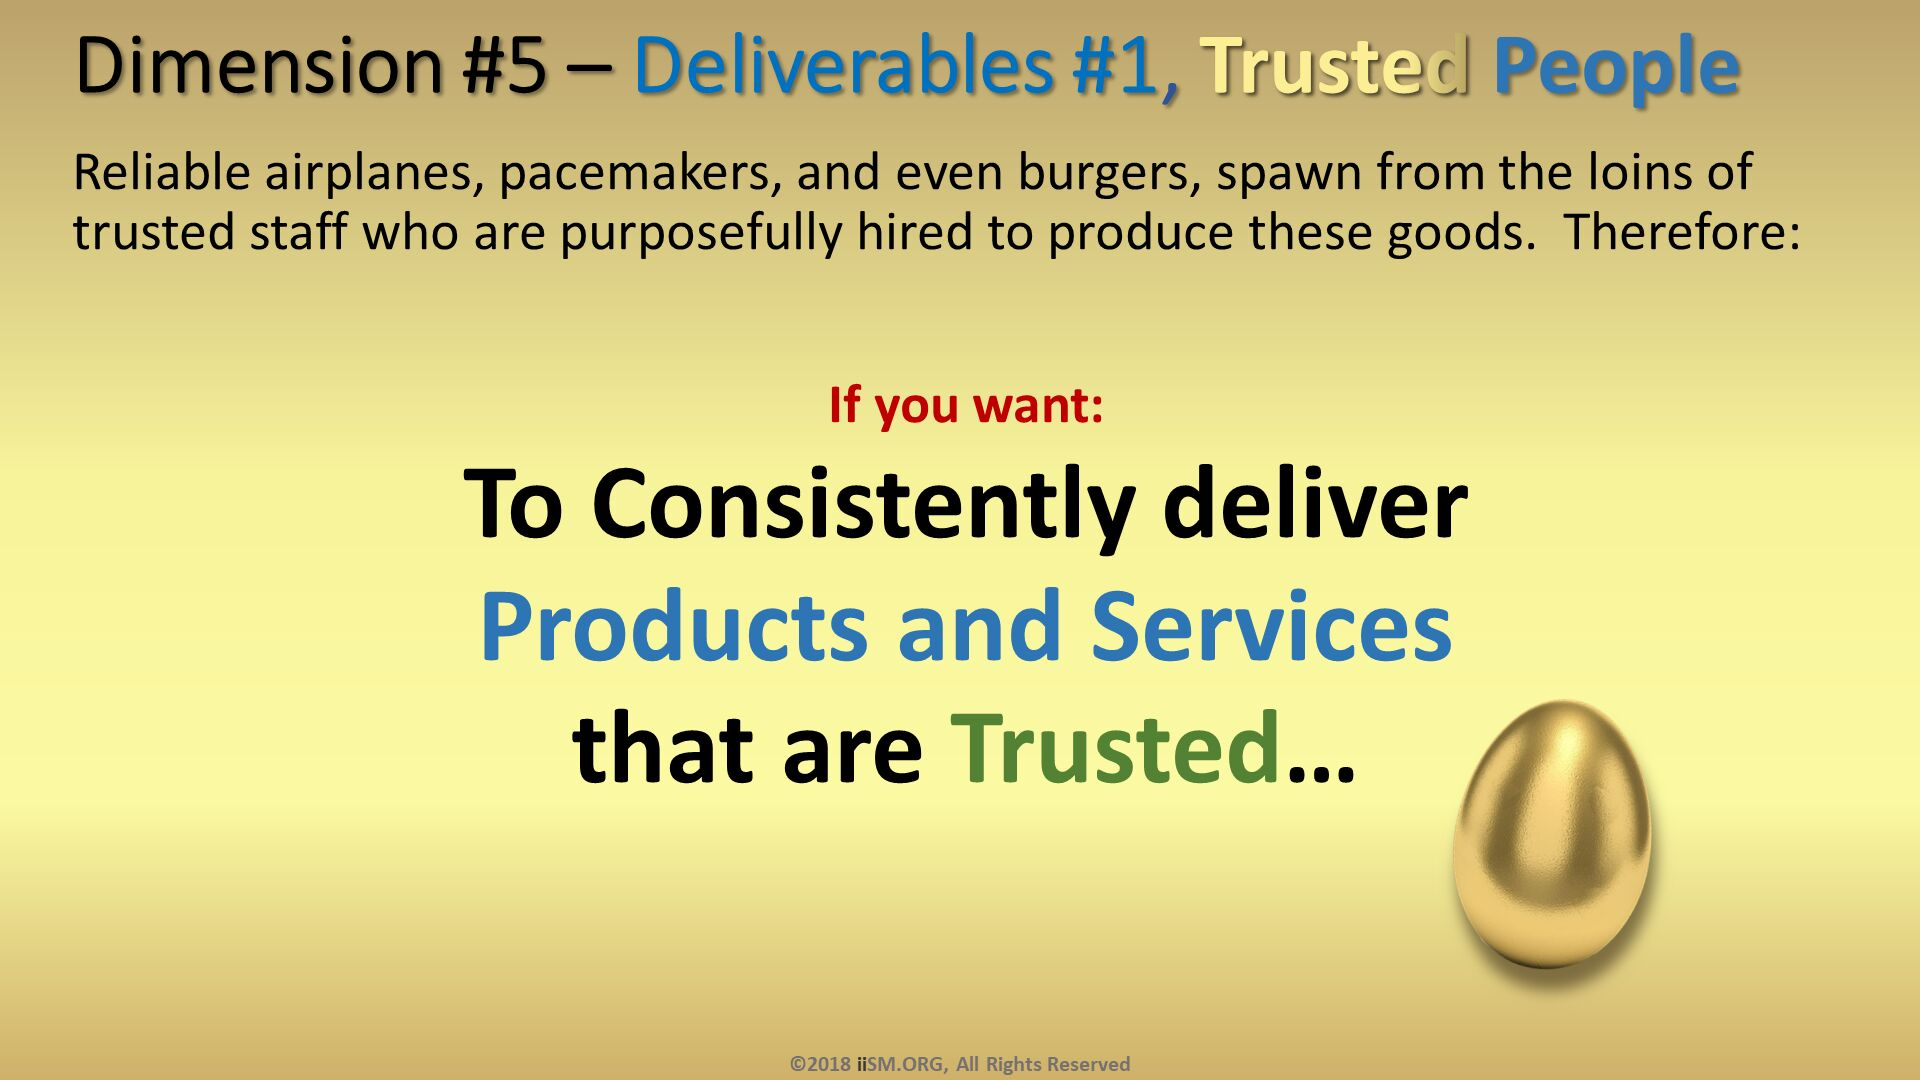 Dimension #5 – Deliverables #1, Trusted People. Reliable airplanes, pacemakers, and even burgers, spawn from the loins of trusted staff who are purposefully hired to produce these goods.  Therefore:  If you want:  To Consistently deliver  Products and Services  that are Trusted…. ©2018 iiSM.ORG, All Rights Reserved.